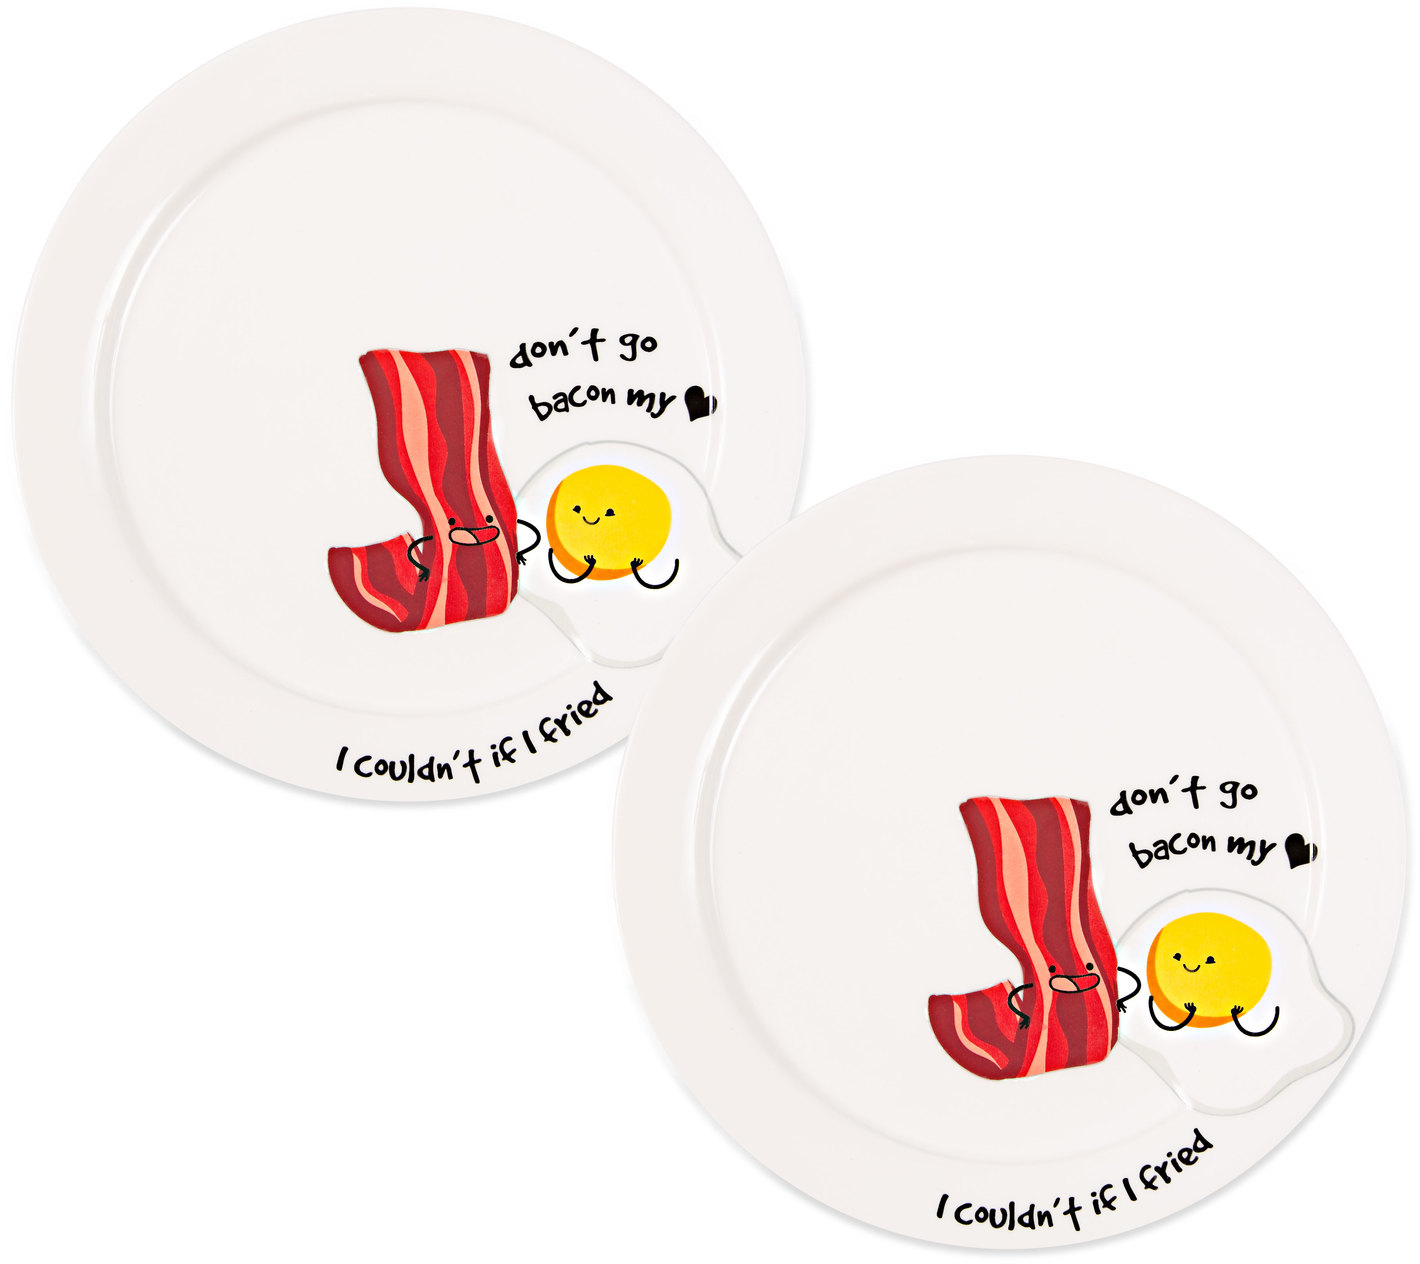 "Bacon My Heart  by Late Night Snacks - Bacon My Heart  - 7"" Appetizer Plates (Set of 2)"